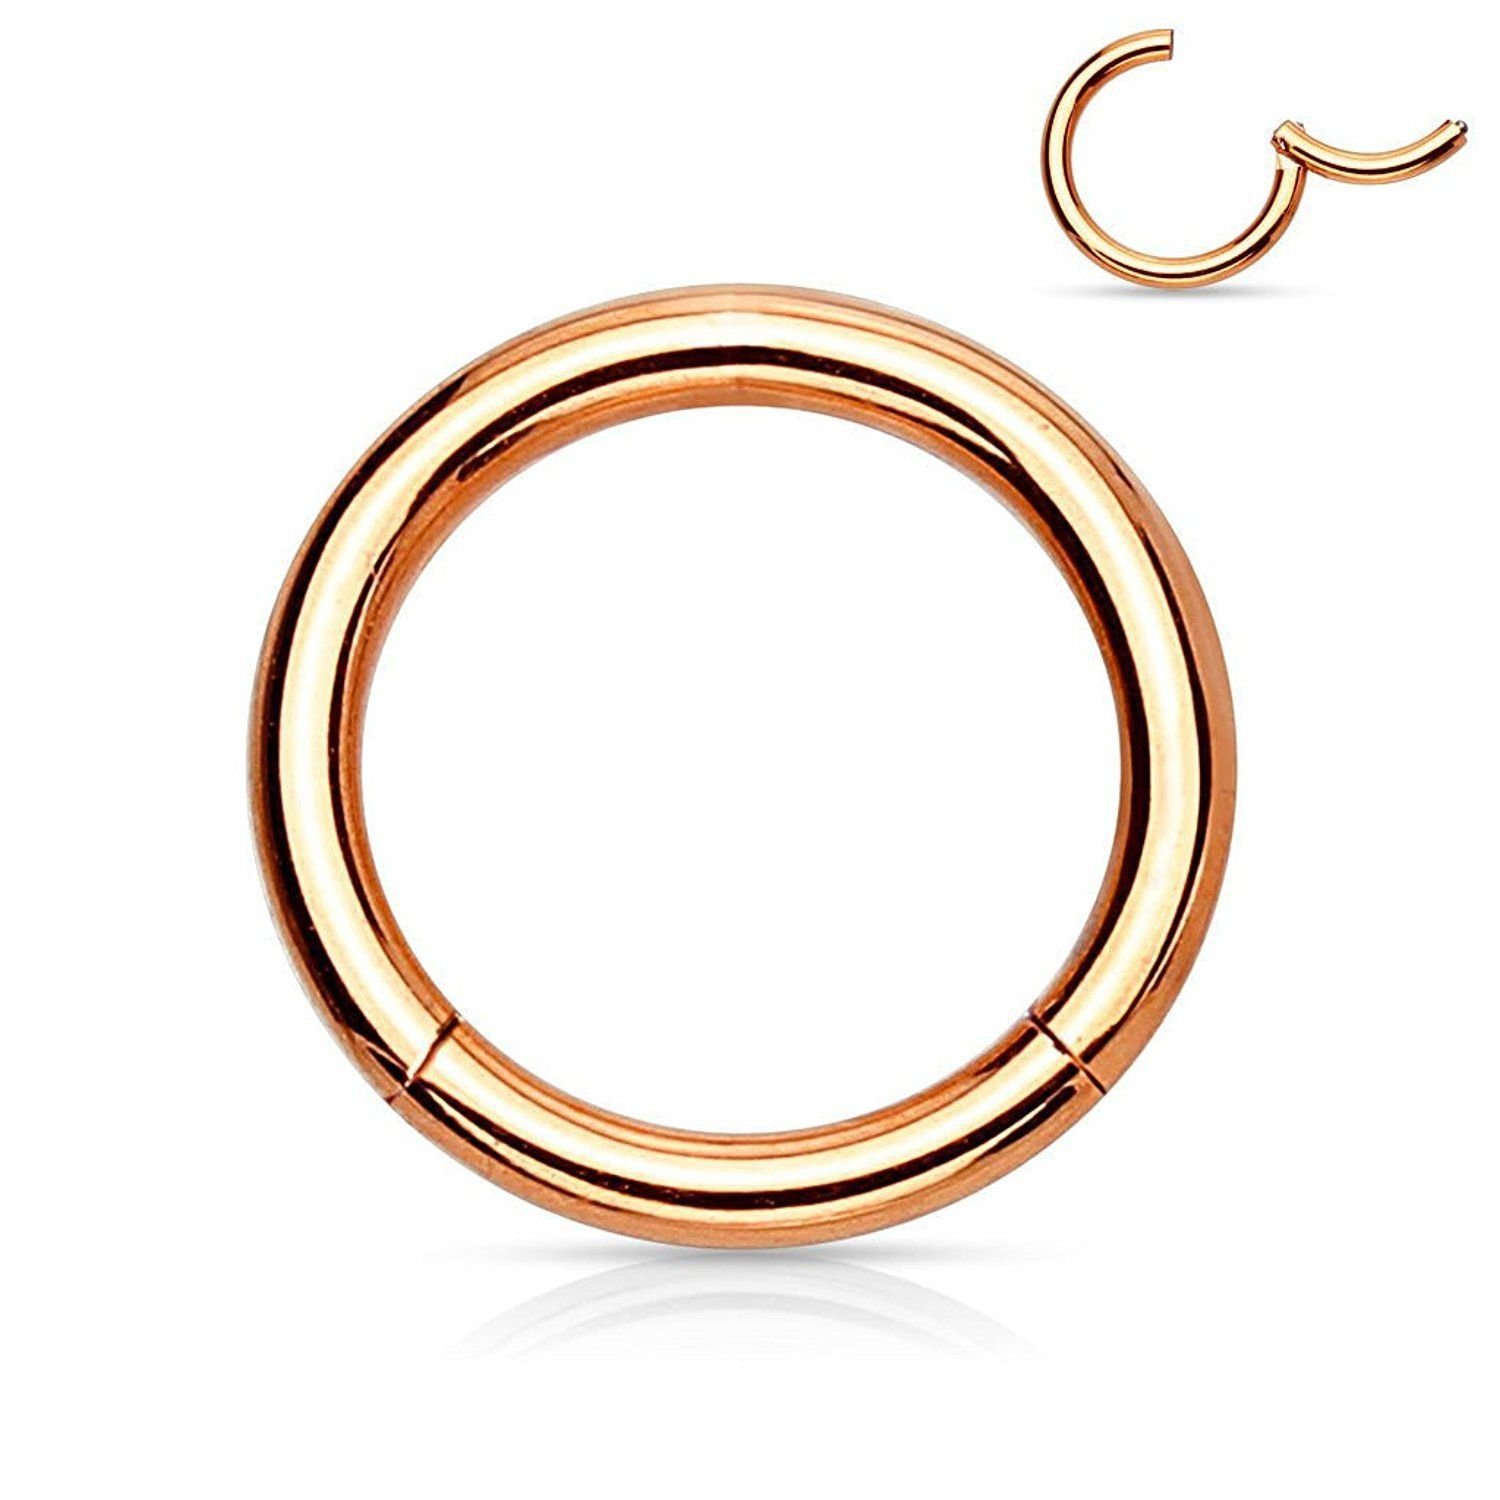 Steel Rose Gold IP Hinged Clicker Segment Septum Lip Nose Hoop Ring Helix Daith Cartilage Tragus 20G-18G-16G-14G-12G-10G All Lengths Available B07C84HN46 14GA (1.6mm) 8mm  14GA (1.6mm) 8mm